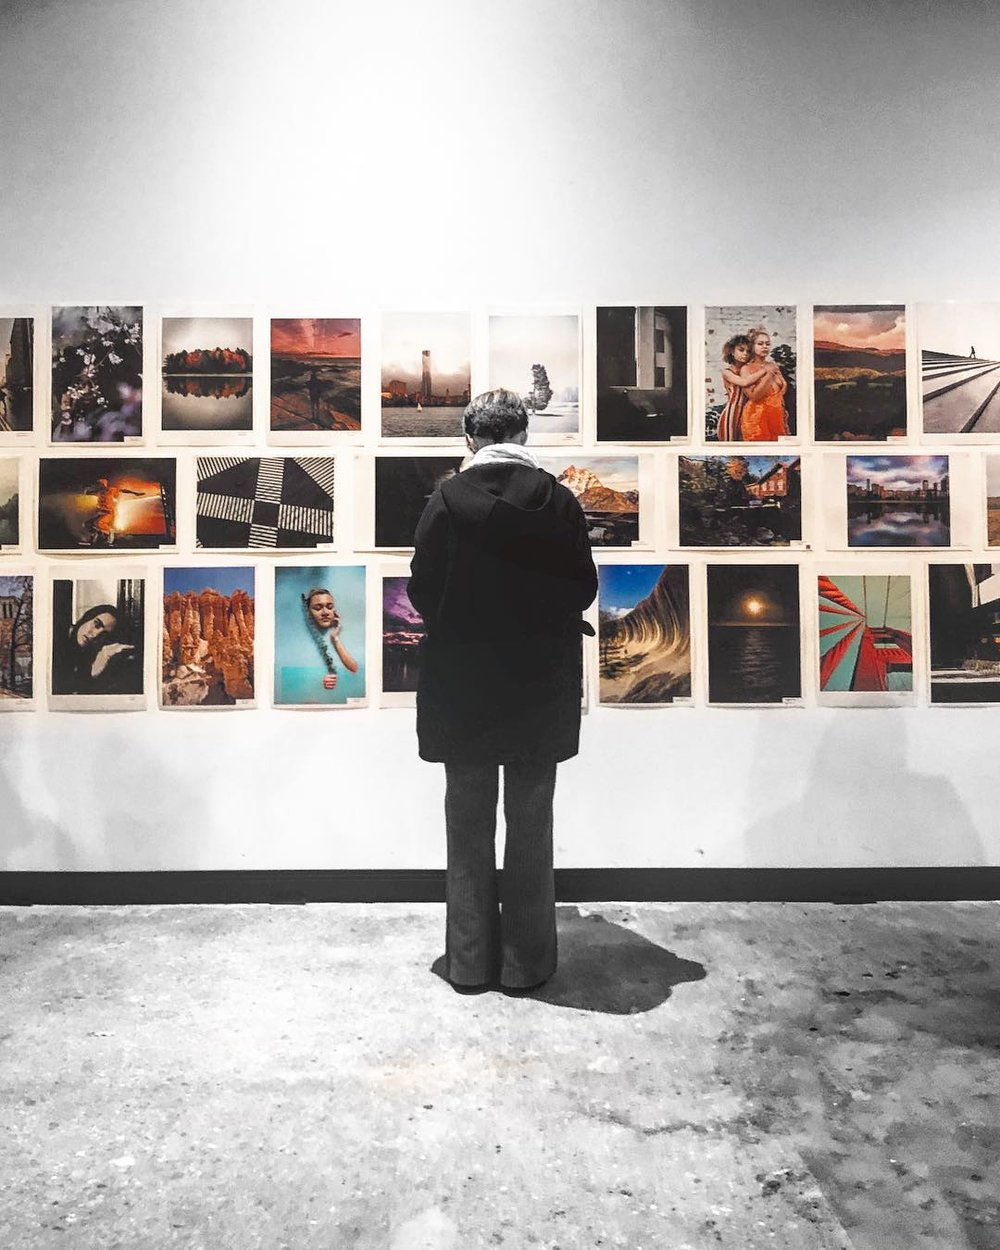 - GallerySpace 18 (#igboston_galleryspace18) was a photo gallery event celebrating IGBoston's 5th anniversary, held at the Boston Design Center on Saturday November 10th 2018.Over 170 IGBoston members submitted photographs taken from all over the world. Over 300 attendees braved the cold November weather to view the photo gallery, enjoy the free refreshments and listen to live music from Chachi Carvalho, Cadillac Jack and the International Players Band.All event photos by @leeasherphoto